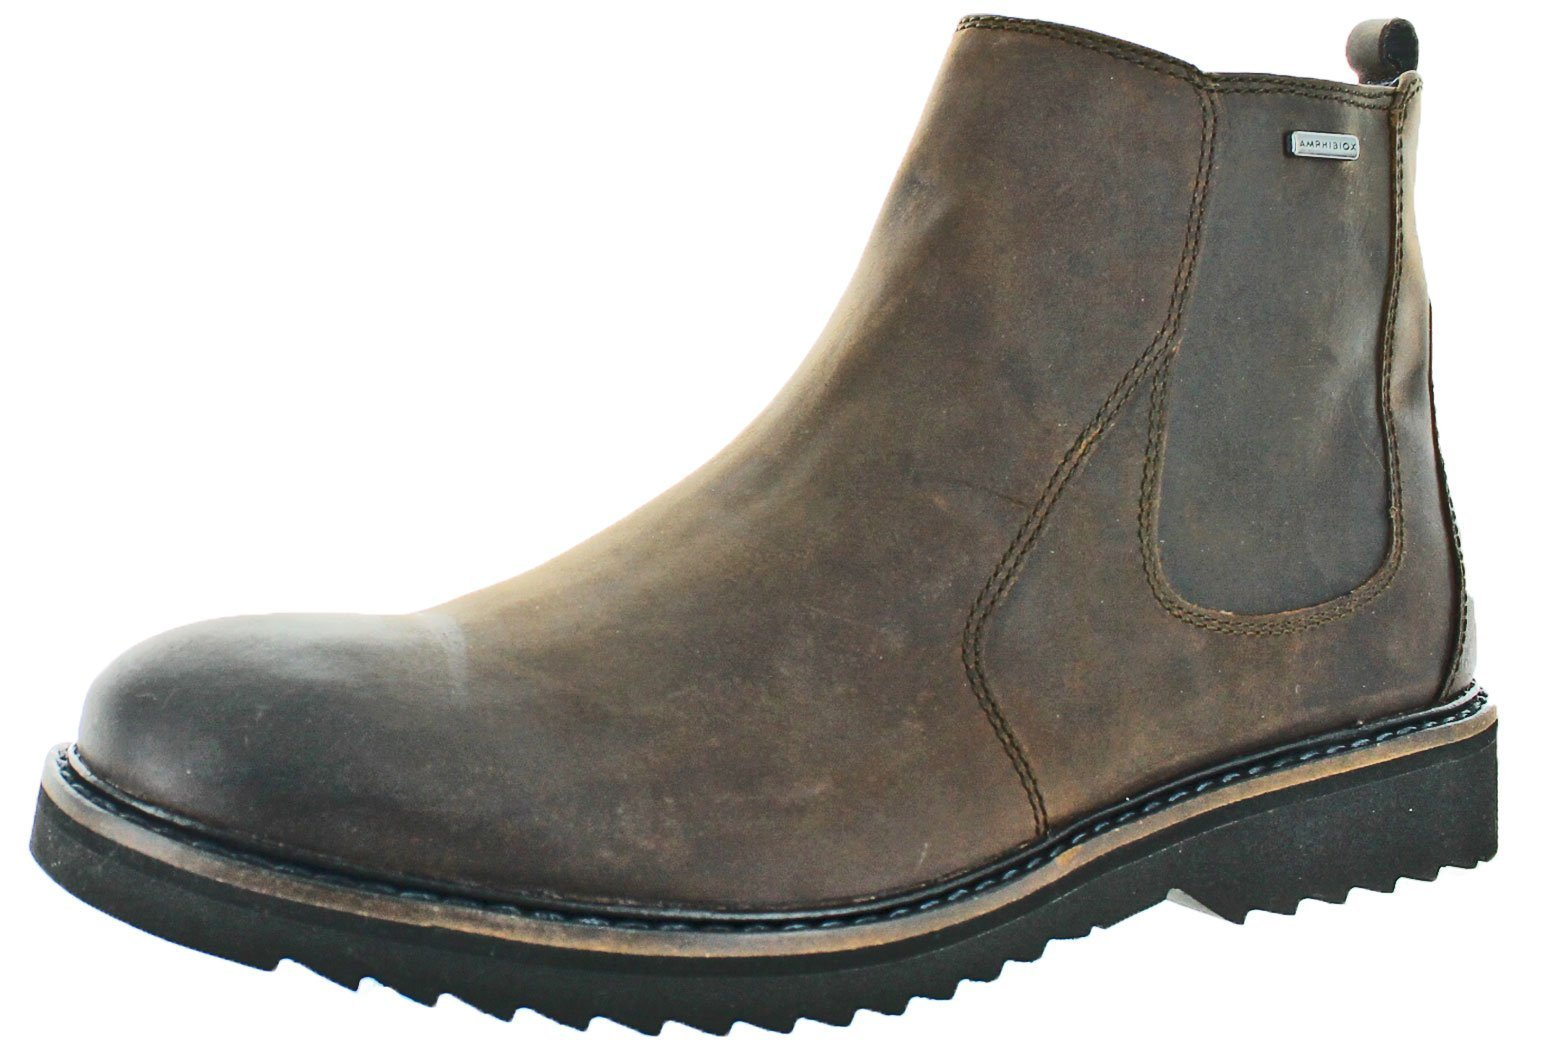 Geox Men's M Chester Abx 6 Chelsea Boot,Chestnut,46 EU/12.5 M US by Geox (Image #8)